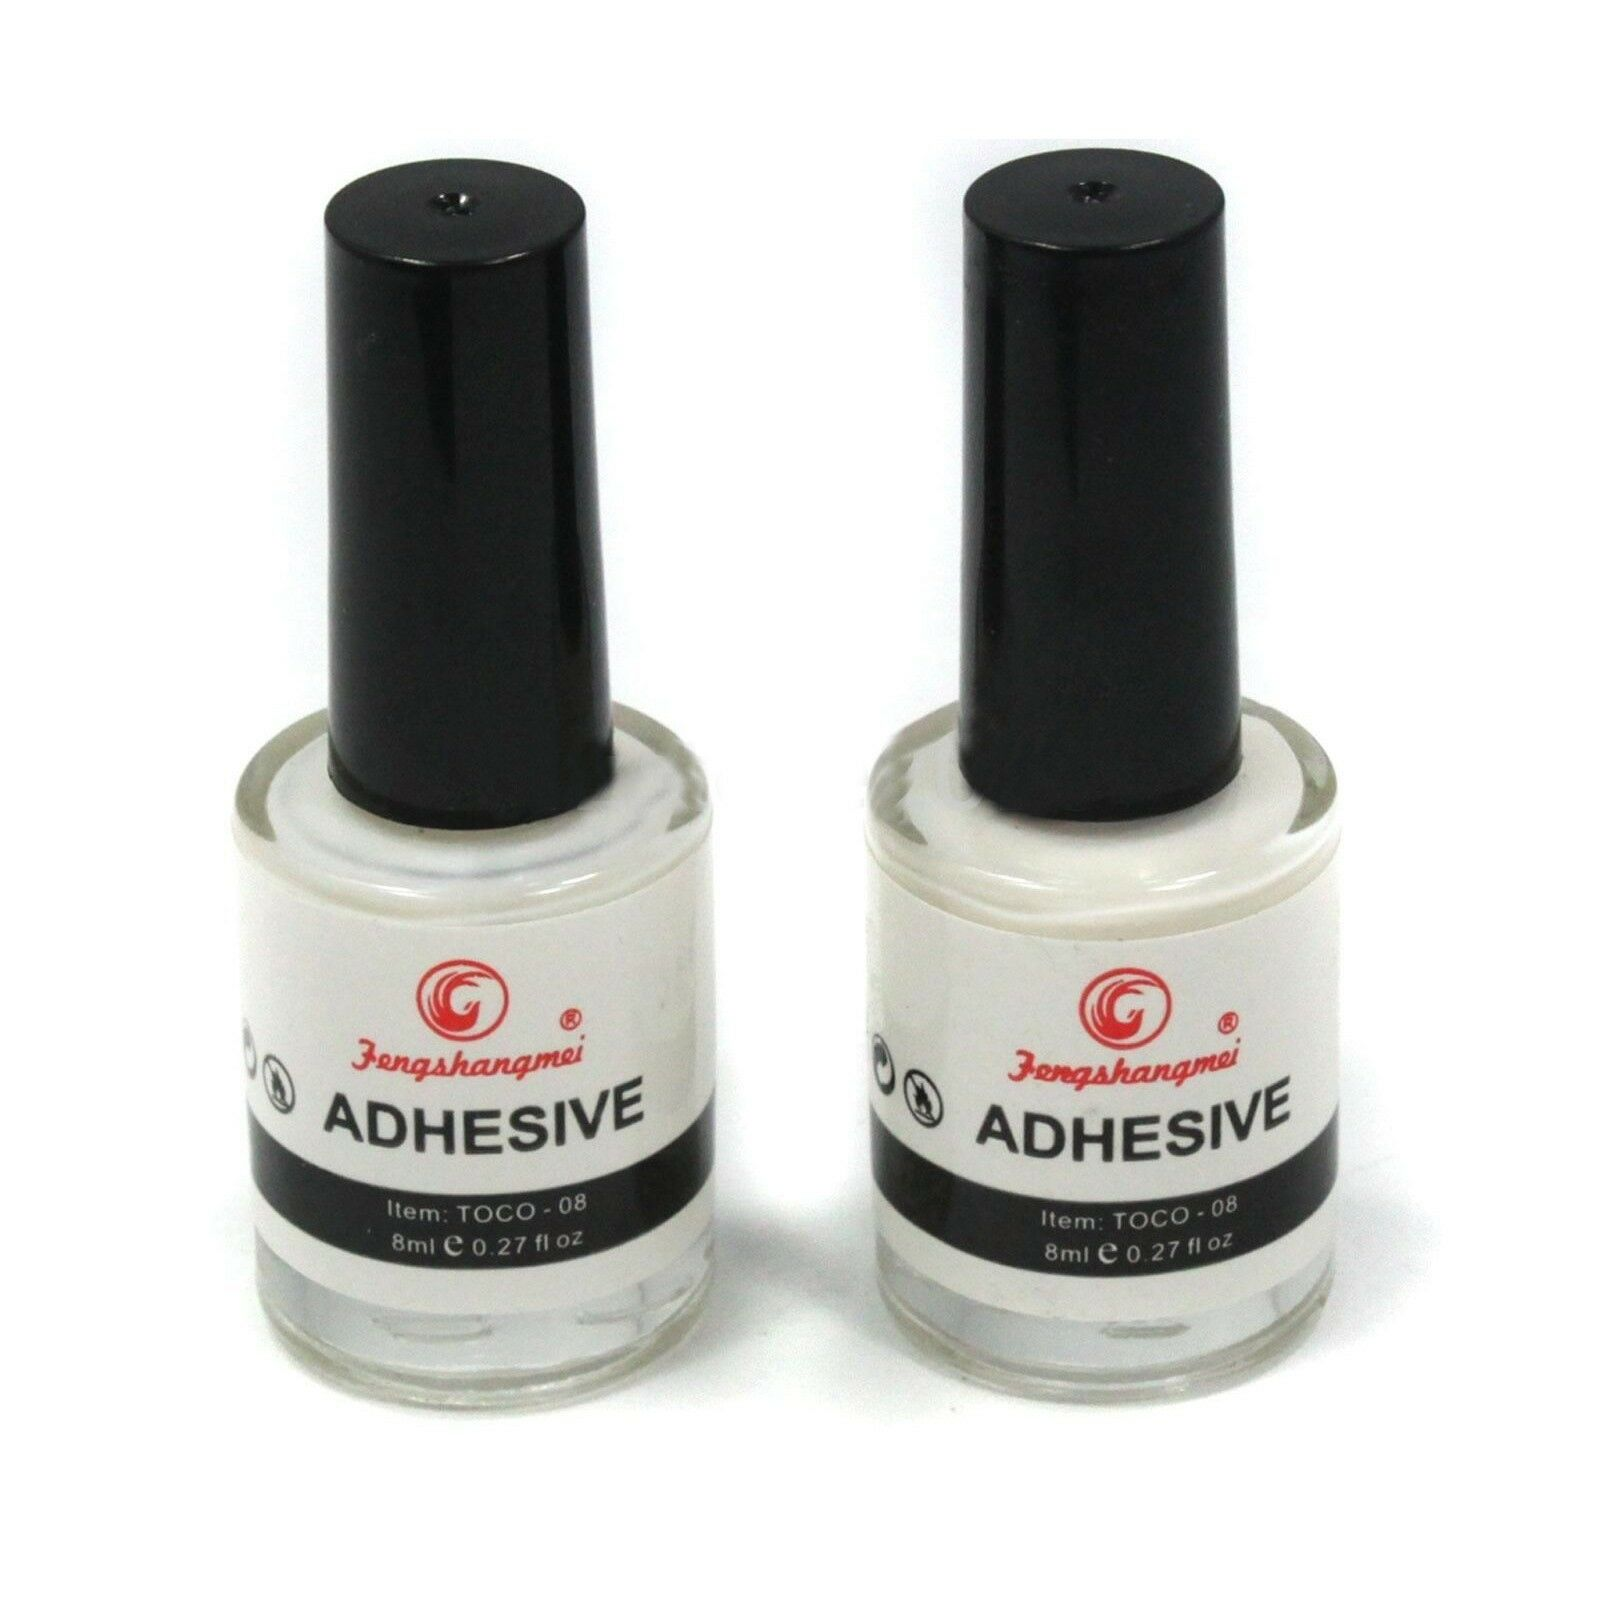 Glue Adhesive for Galaxy Star Foil Sticker Nail Art Transfer Tips ...